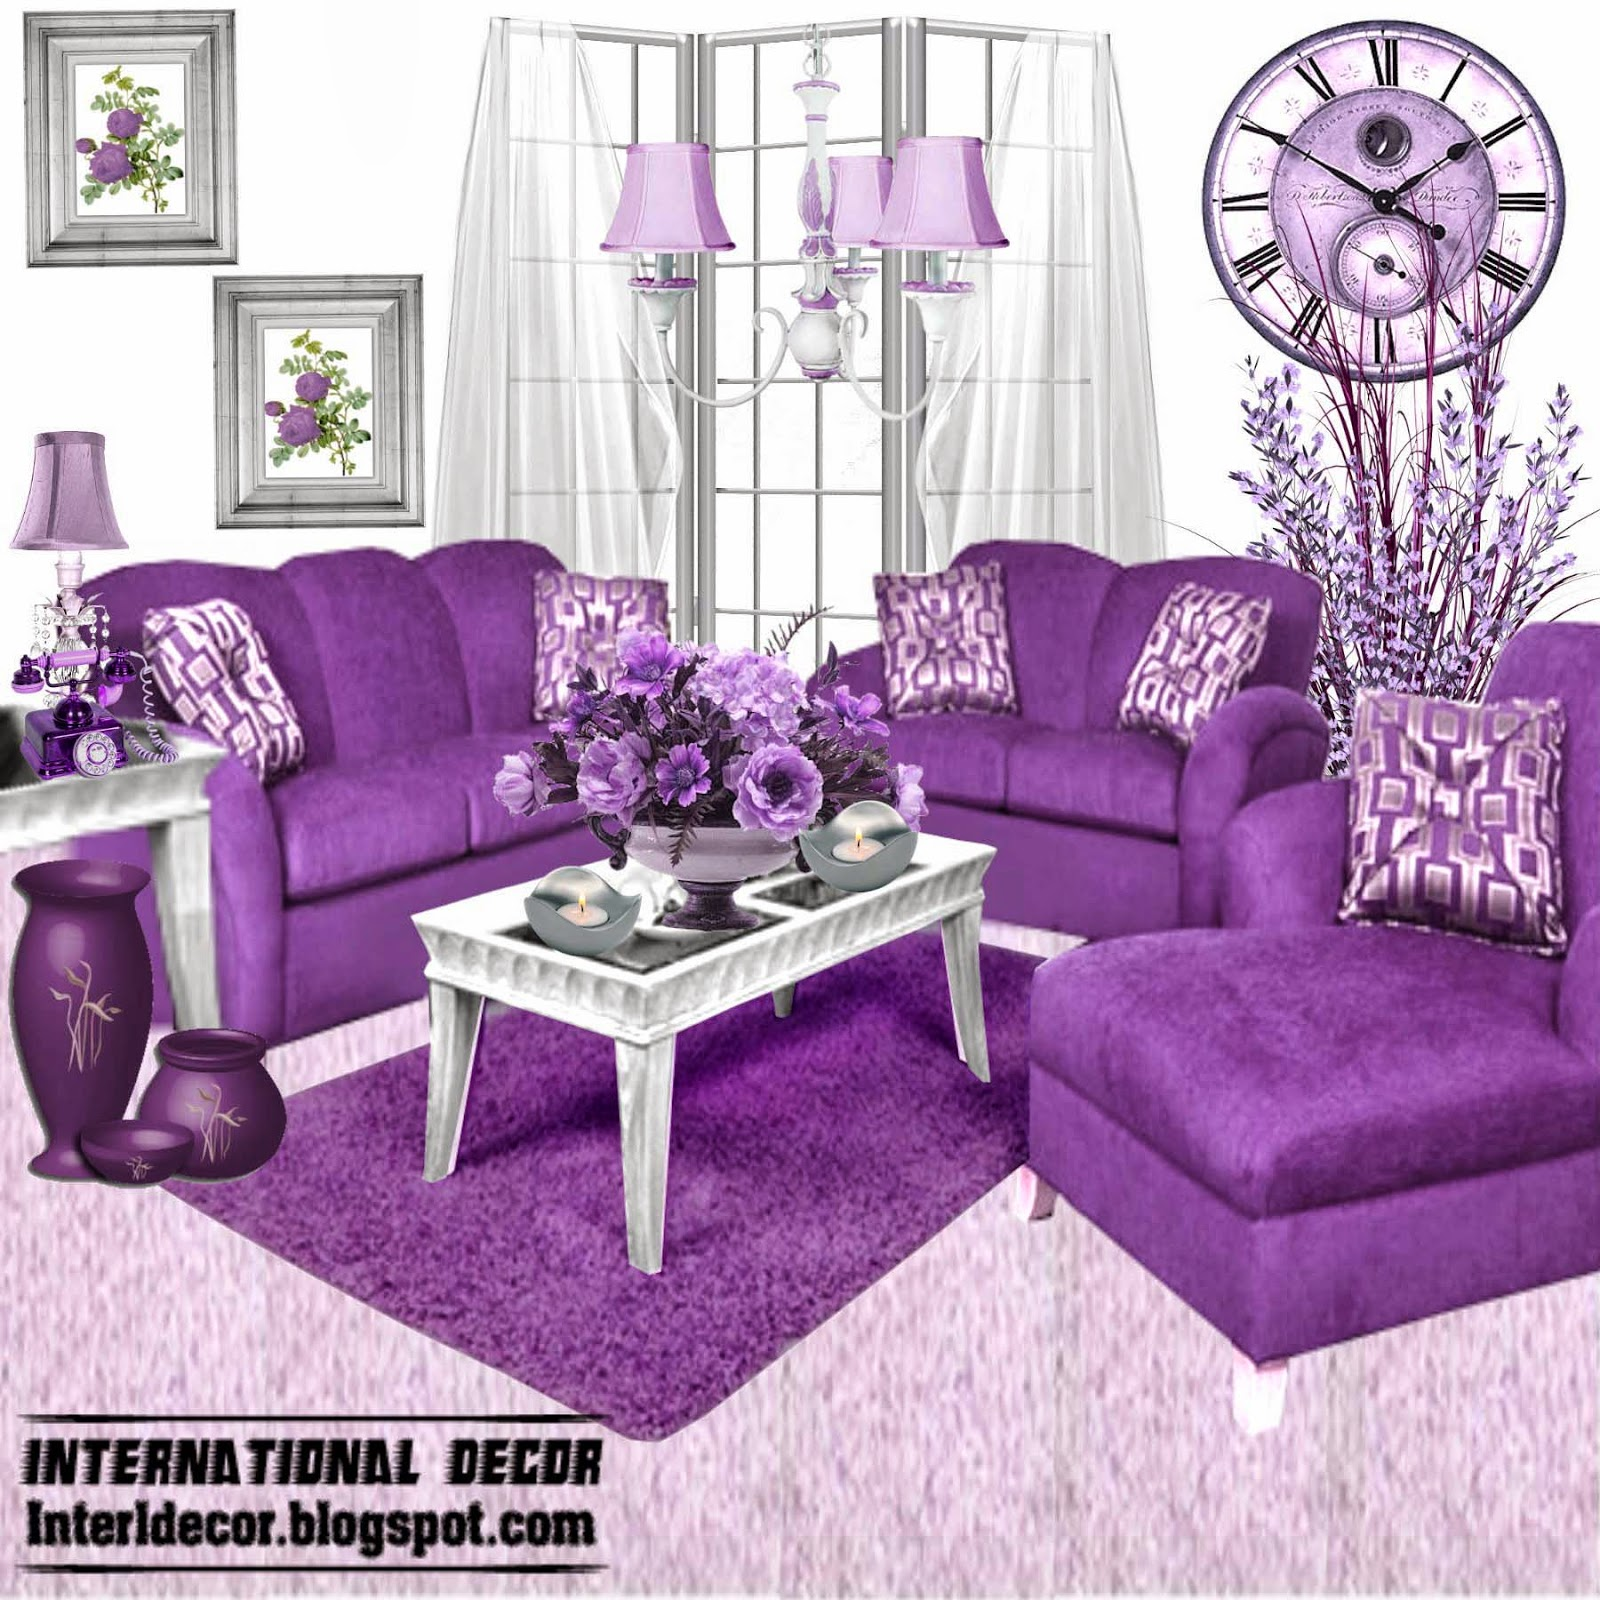 Luxury purple furniture sets sofas chairs for living  : luxury purple furniture for living room purple sofas sets 1 from interldecor.blogspot.in size 1600 x 1600 jpeg 448kB